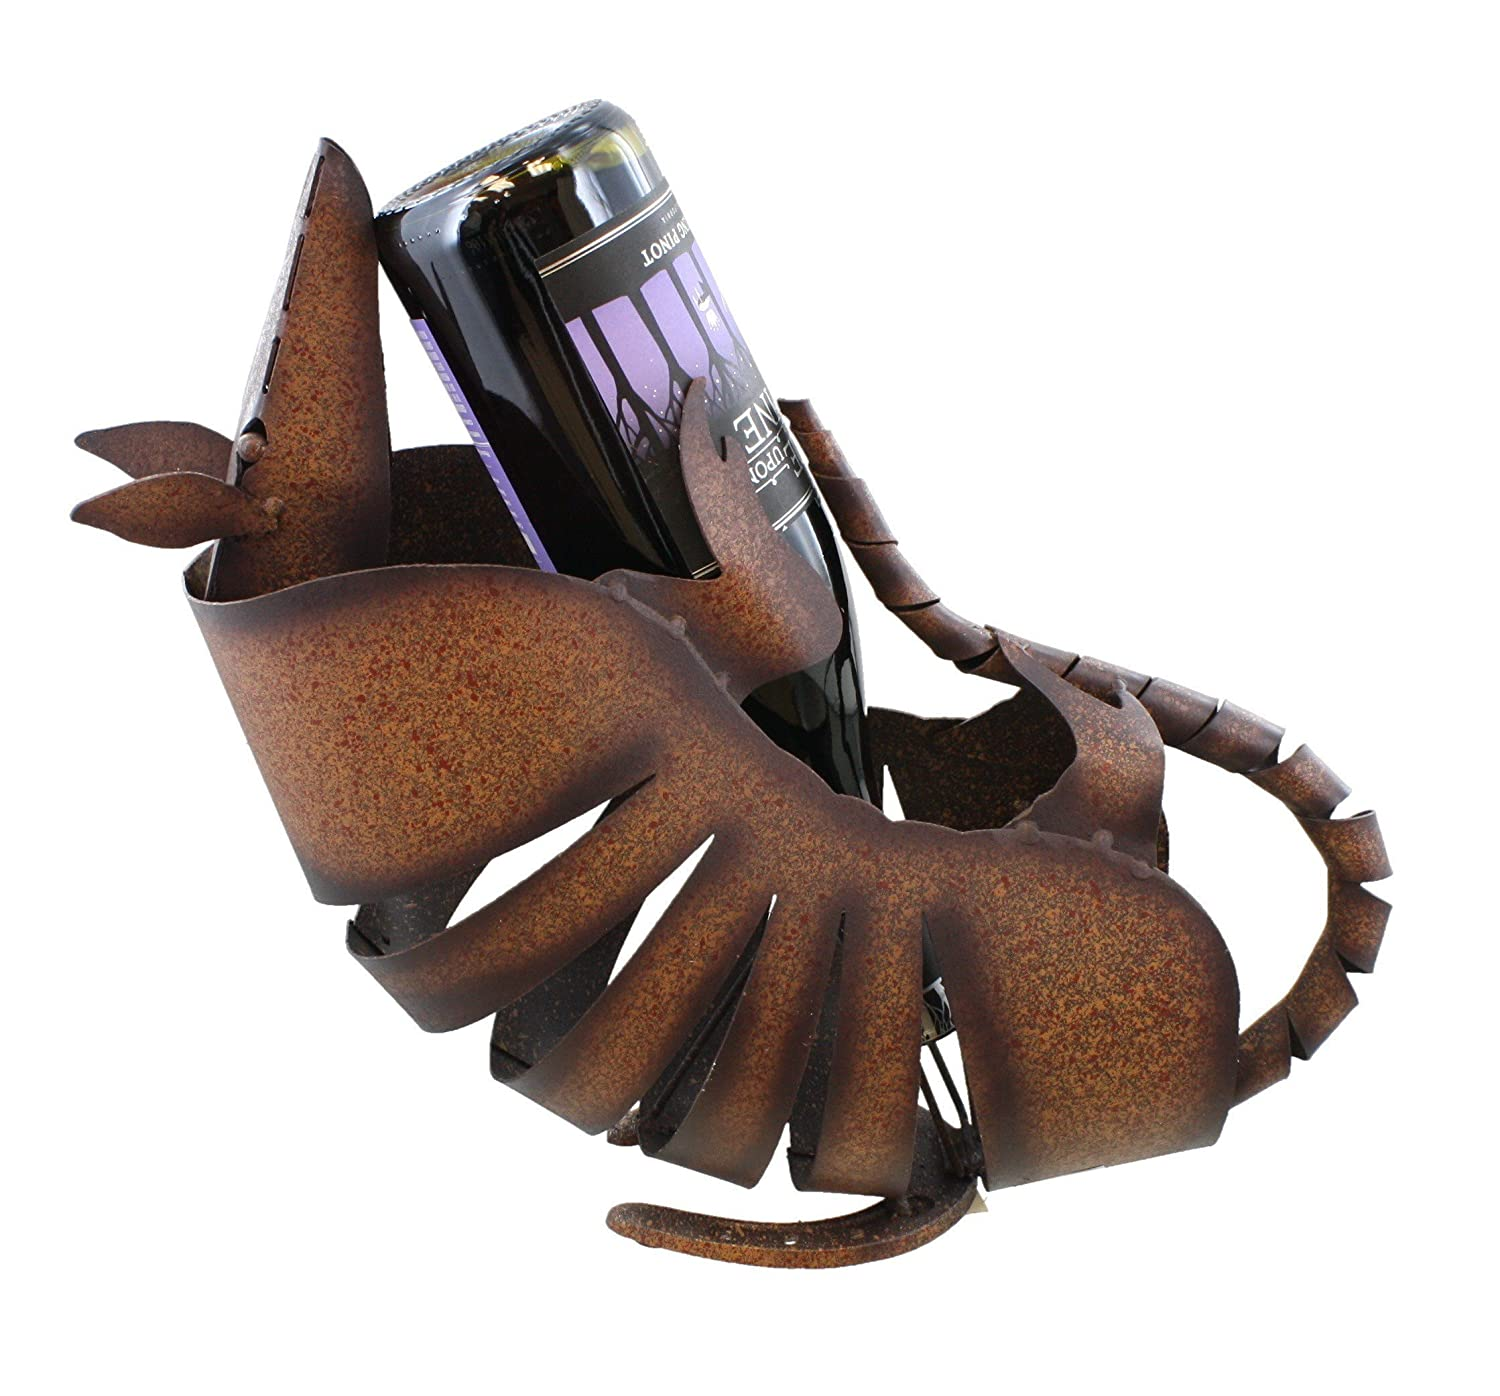 Large Springy Head - Metal Armadillo Wine Bottle Holder - Welded Western Art Sculpture Figure allen roth brinkley handsome oil rubbed bronze metal toothbrush holder